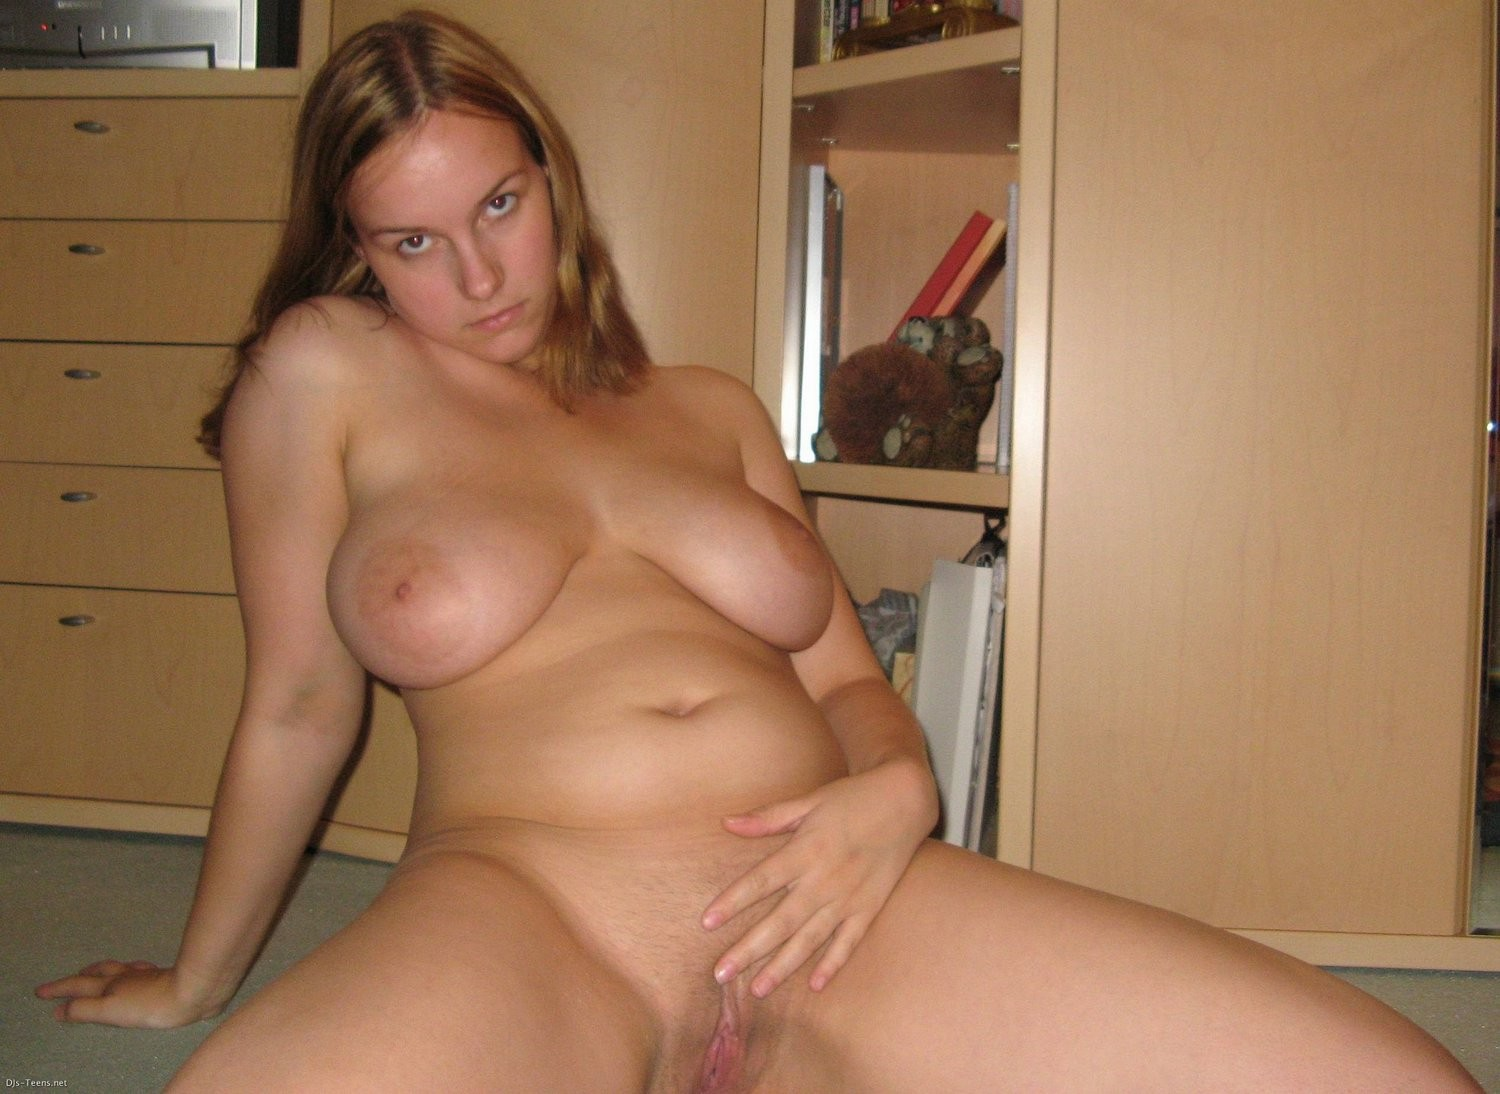 Possible tell, nude couple sex hot consider, what